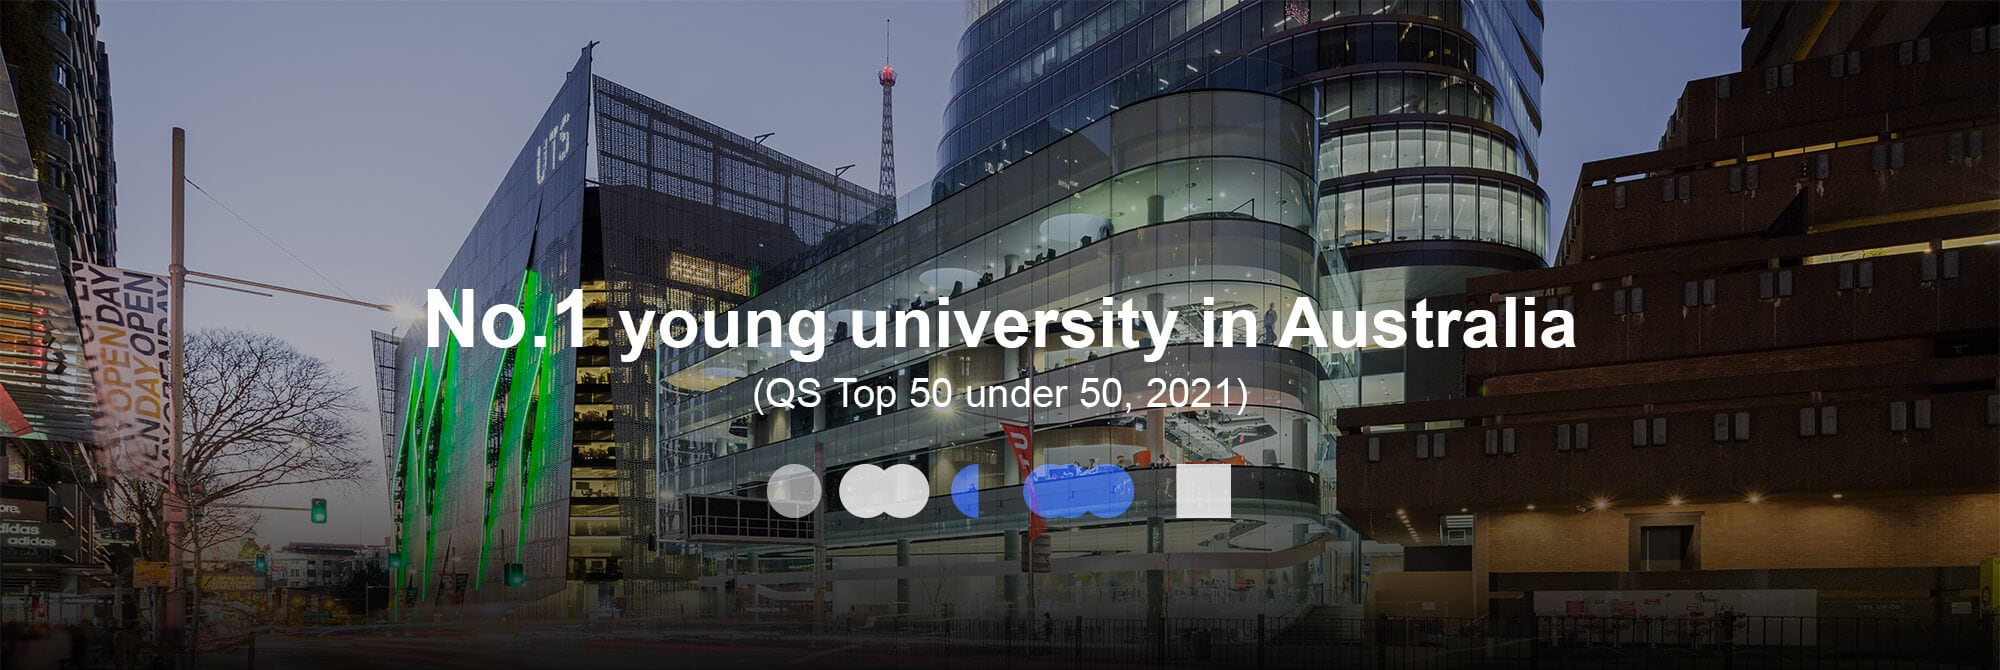 No. 1 Young university in Australia